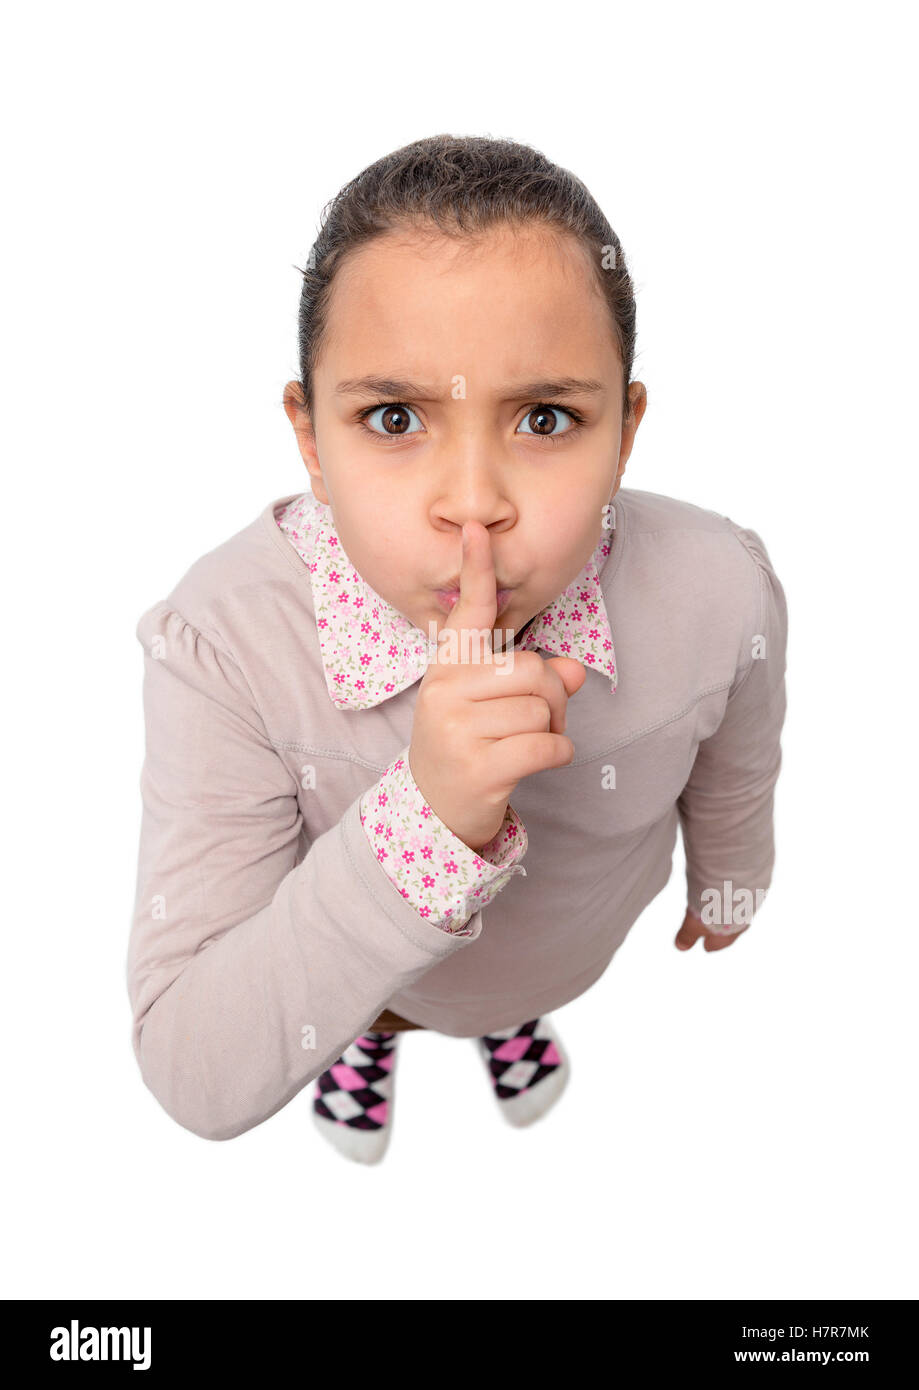 Young Girl with Silence Sign Isolated on White Background - Stock Image